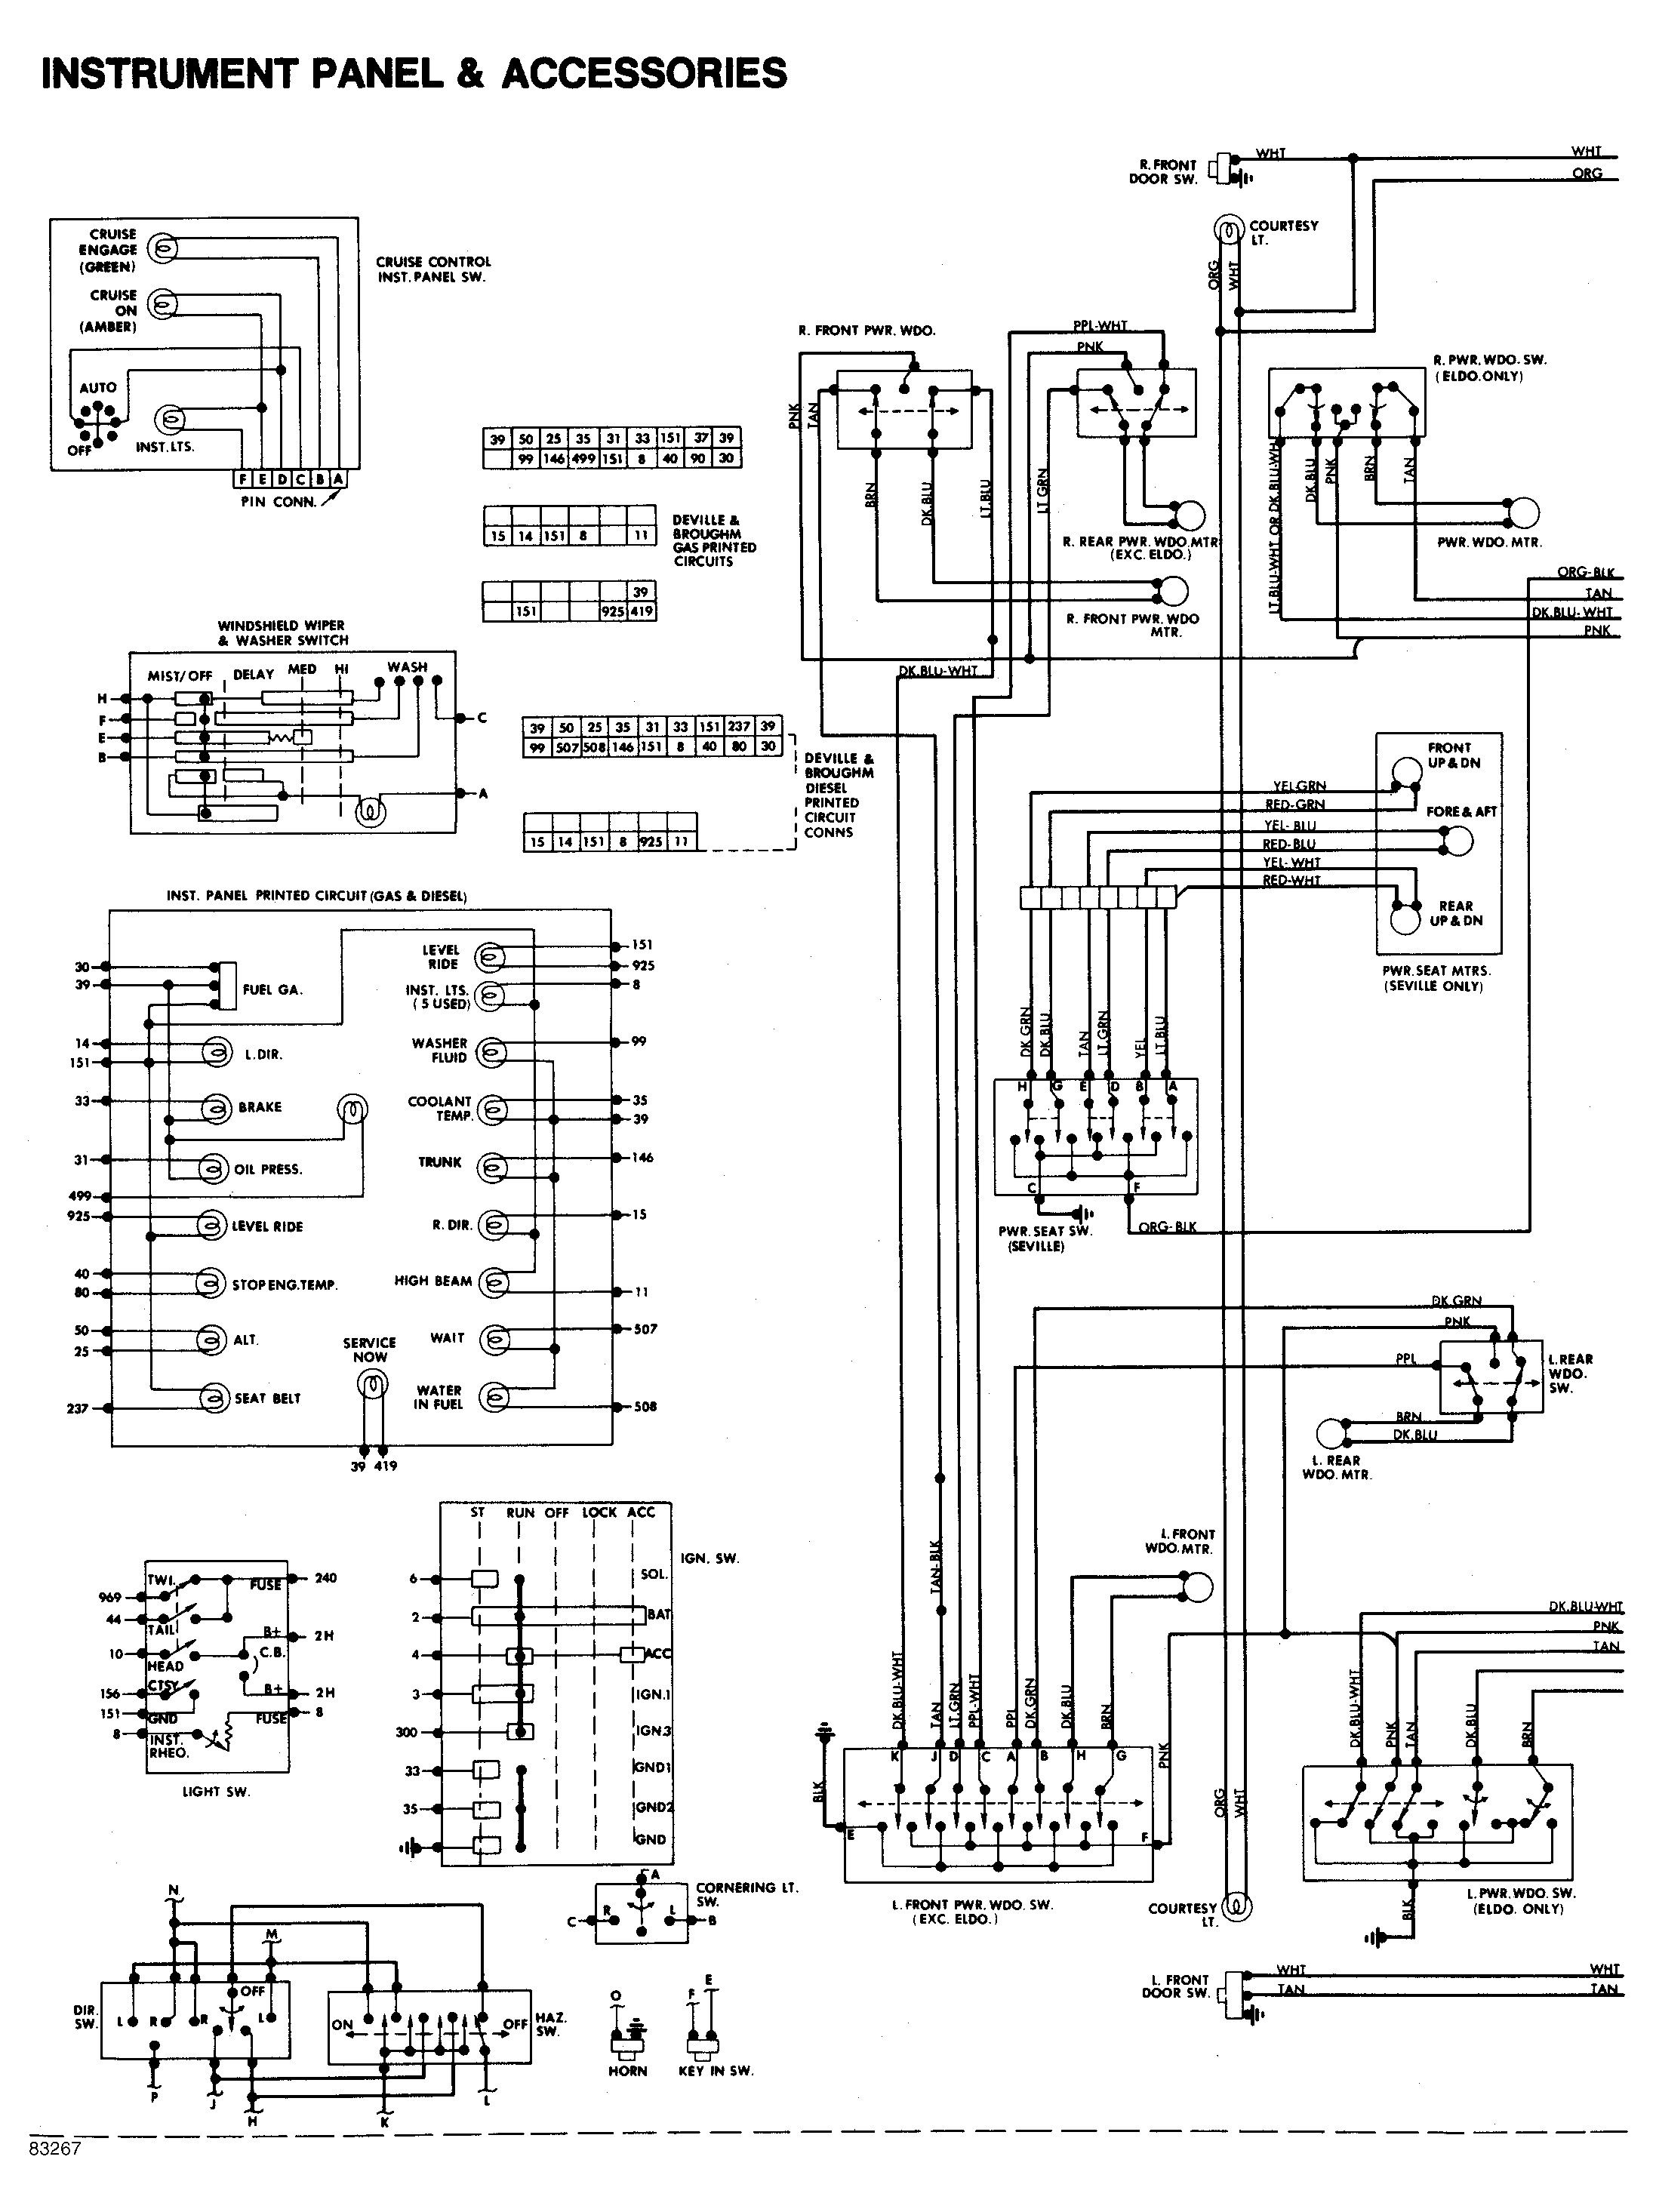 784CDF0 Daewoo Cielo Workshop Manual Free Downloadt | Wiring LibraryWiring Library